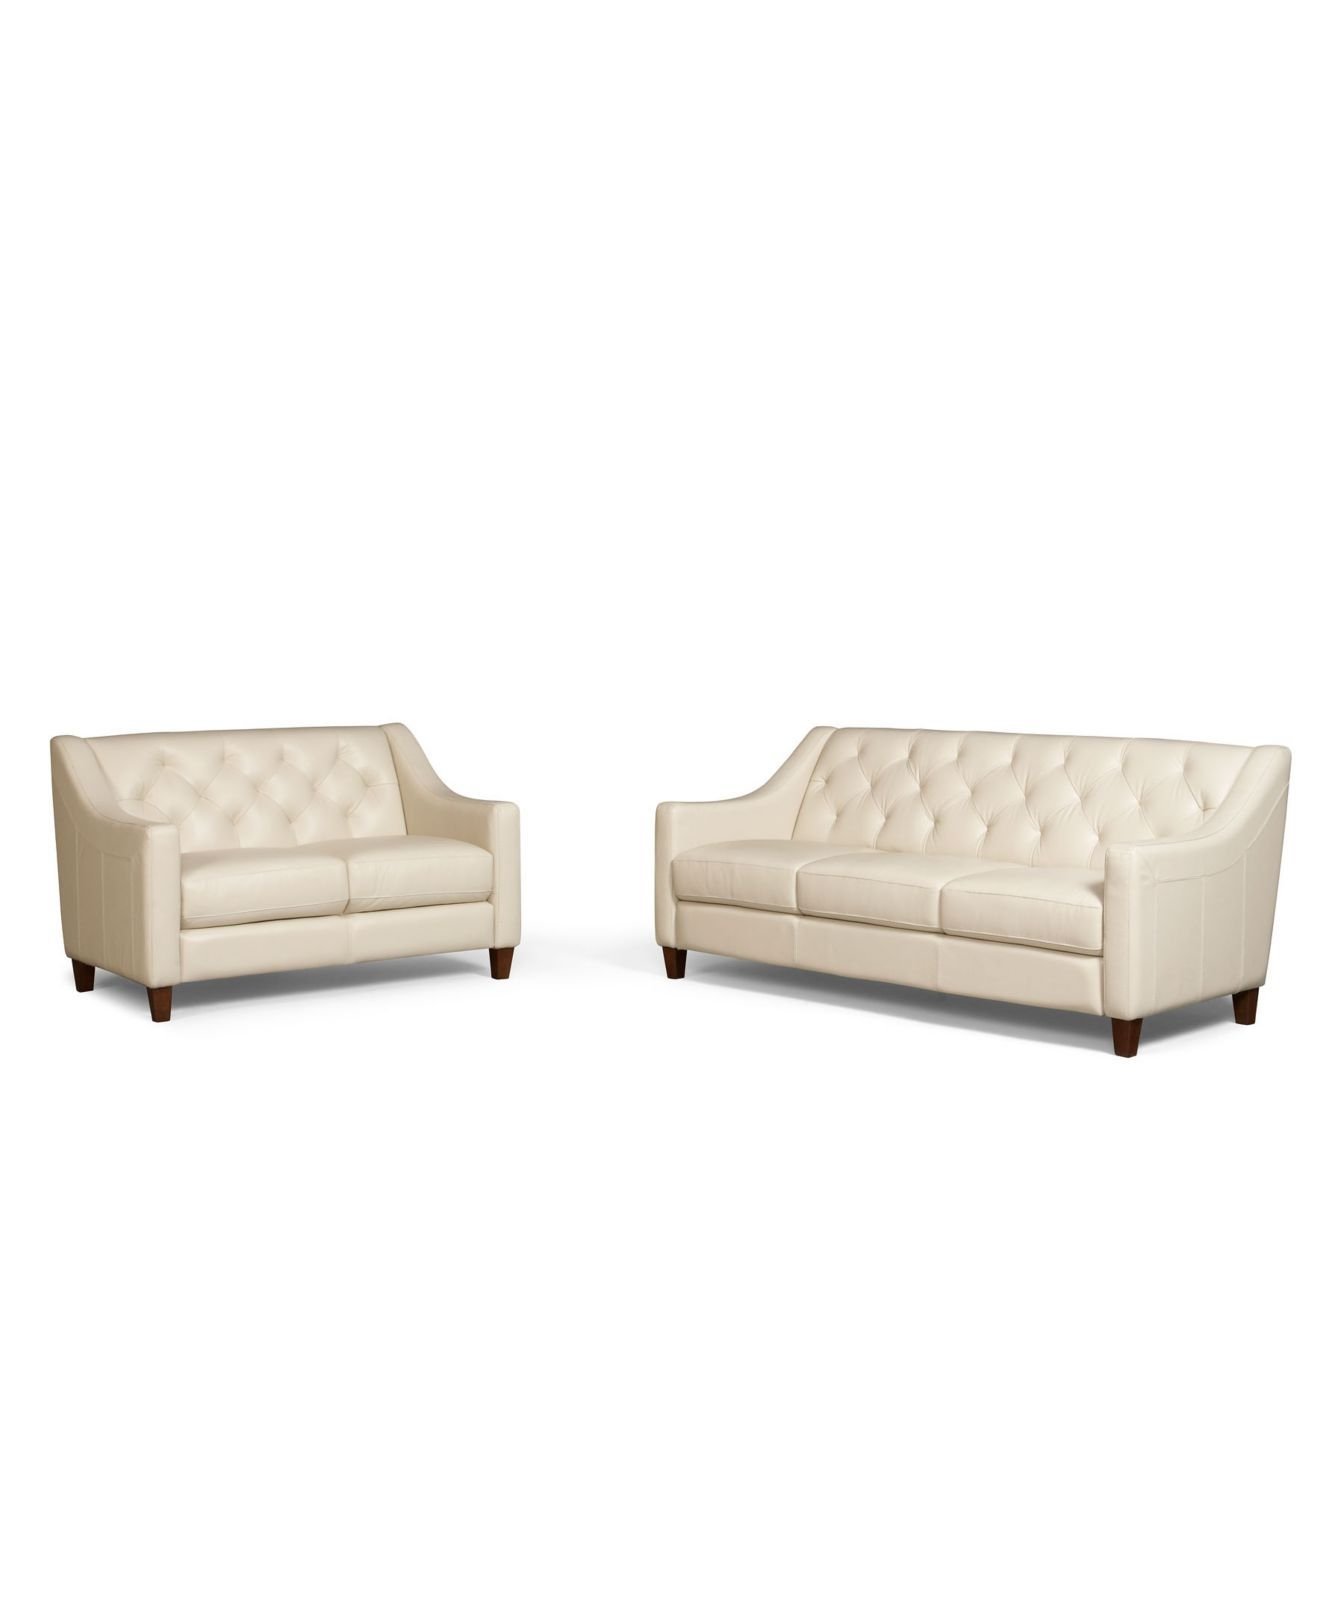 Wonderful Traditional Style Leather sofas On Lovely $1799 Claudia Leather Living Room Furniture 2 Piece sofa On Traditional Style Leather sofas